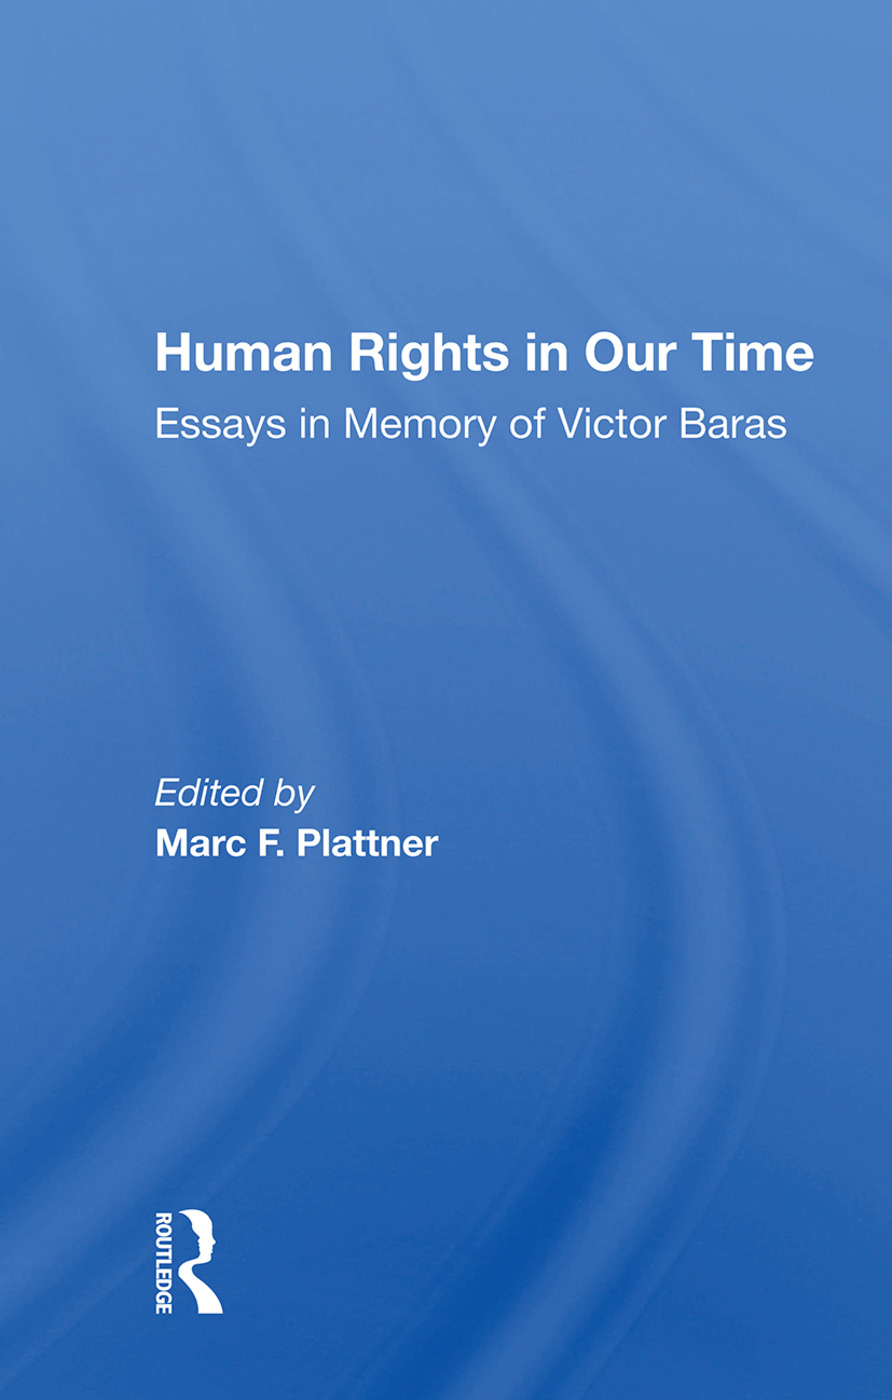 Human Rights In Our Time: Essays In Memory Of Victor Baras book cover